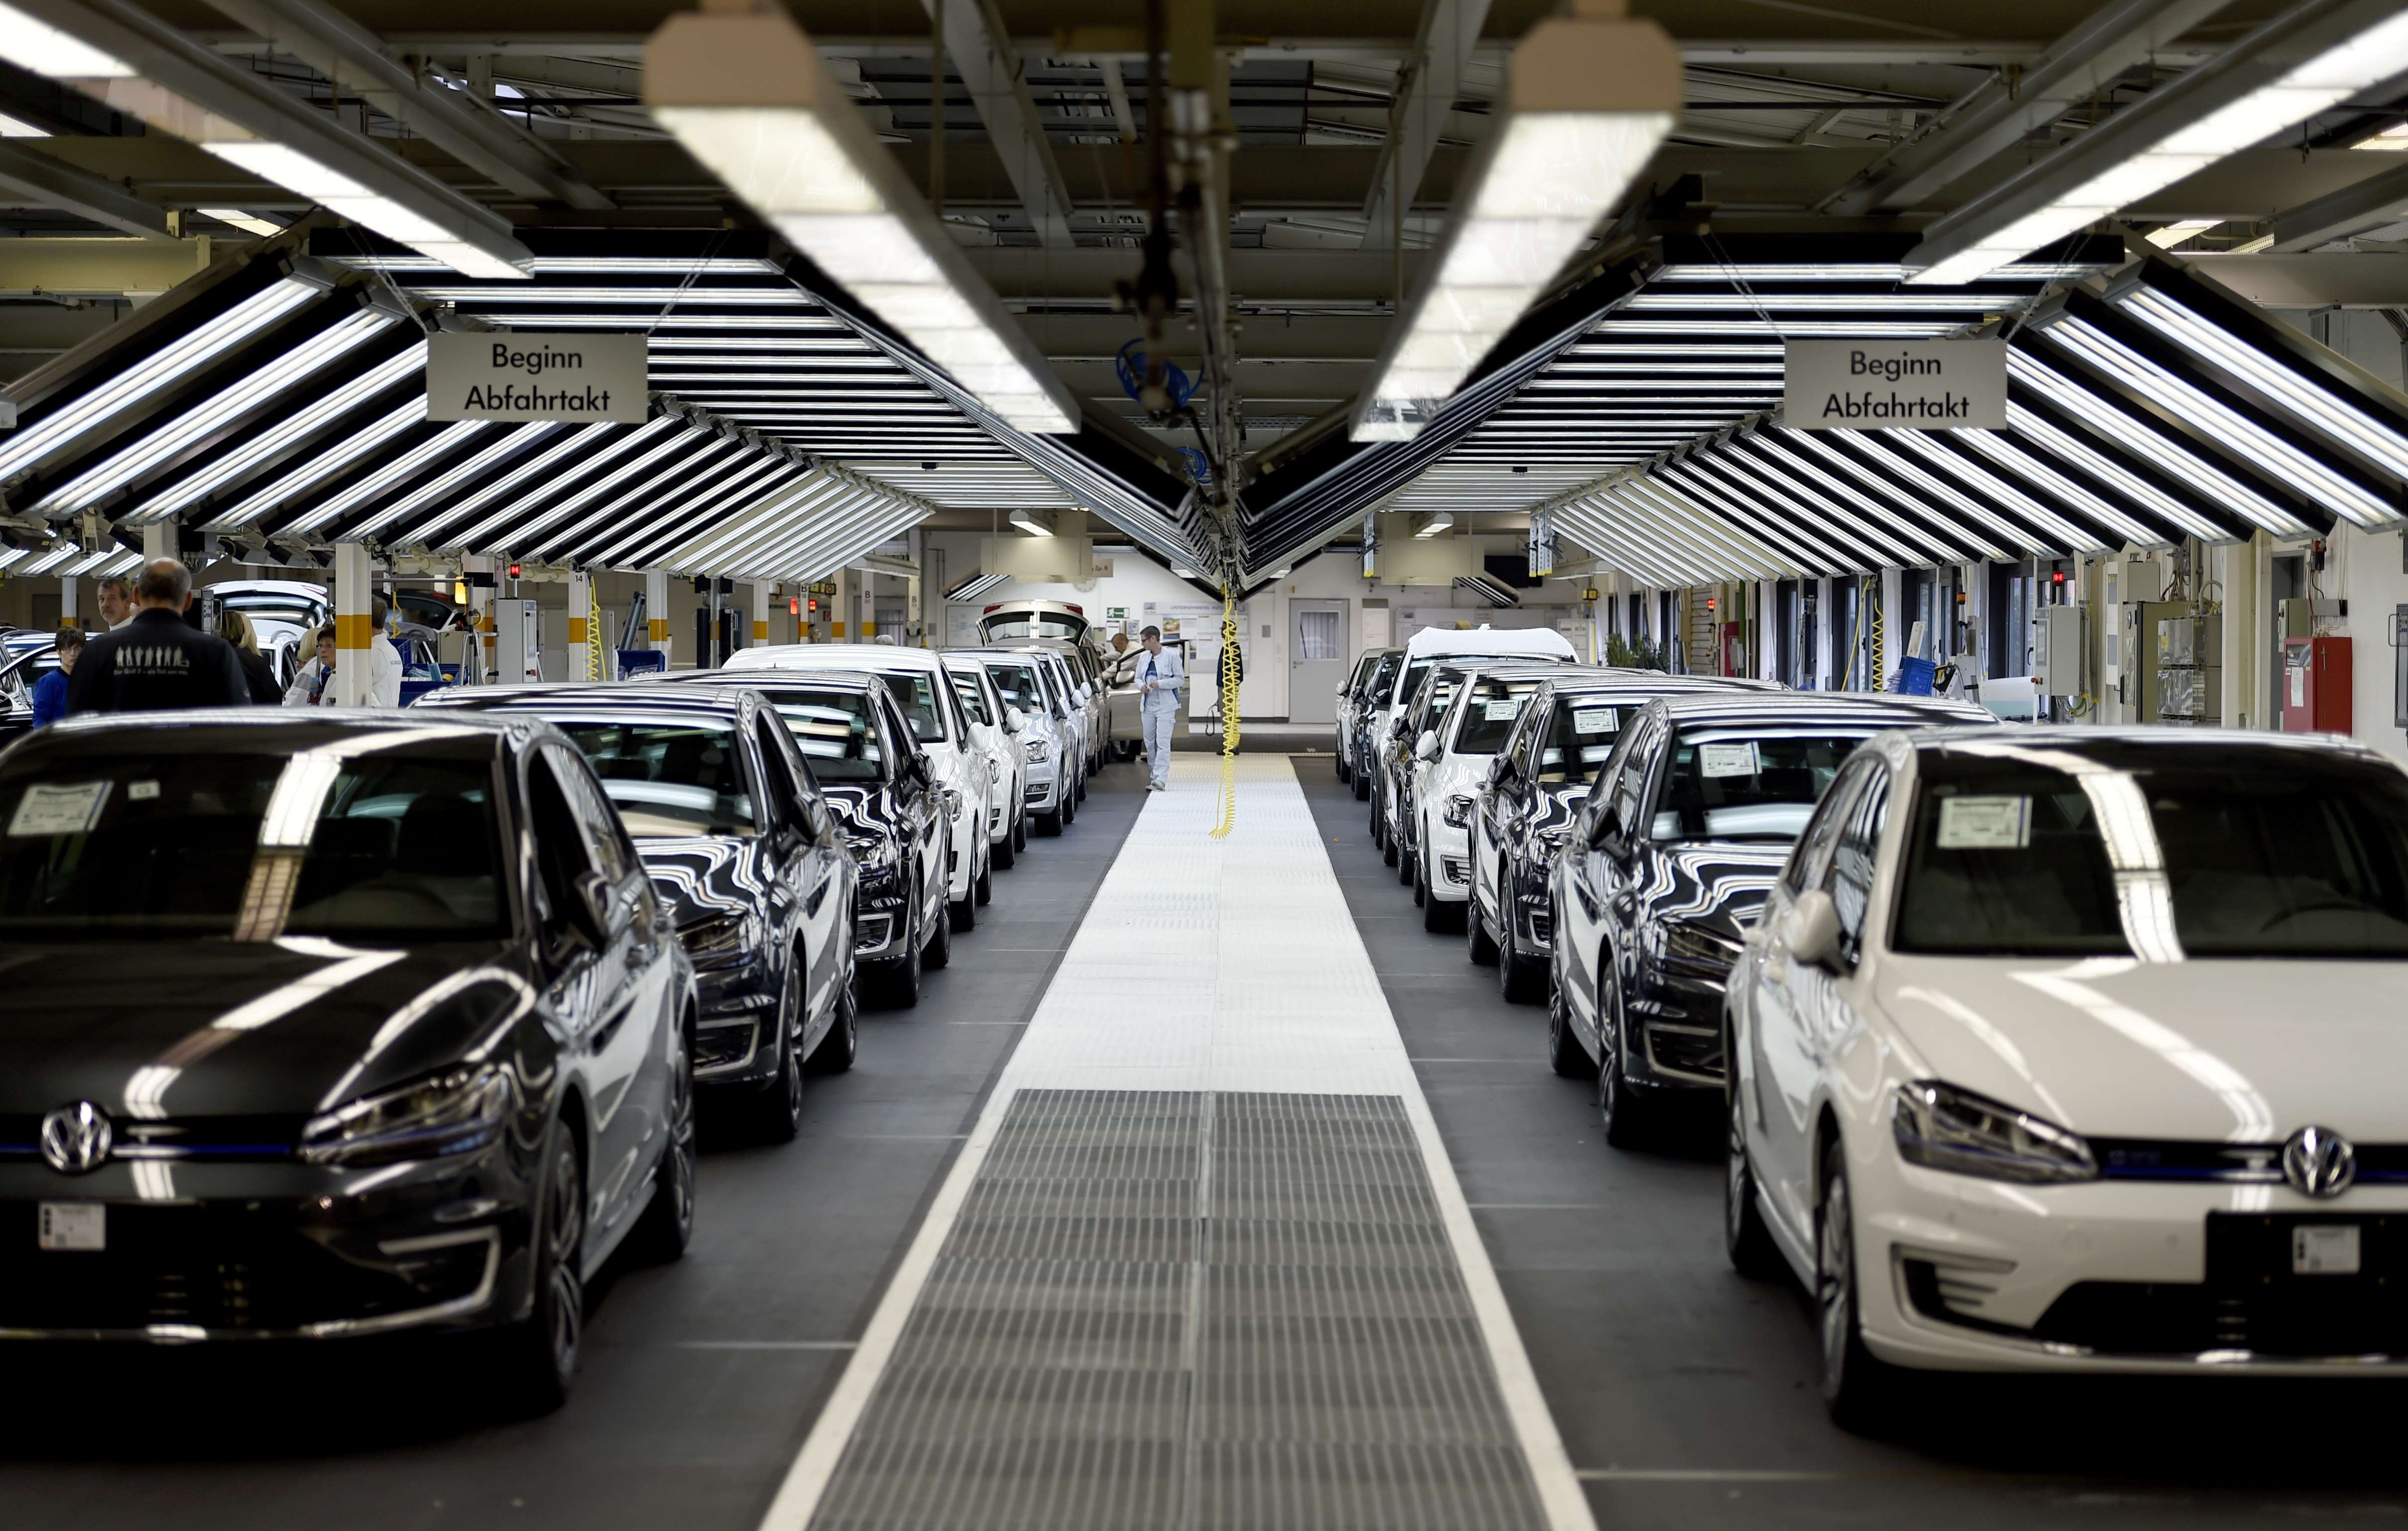 Employees of German car maker Volkswagen check cars at a assembly line of the VW plant in Wolfsburg, Germany, Oct. 21, 2015.